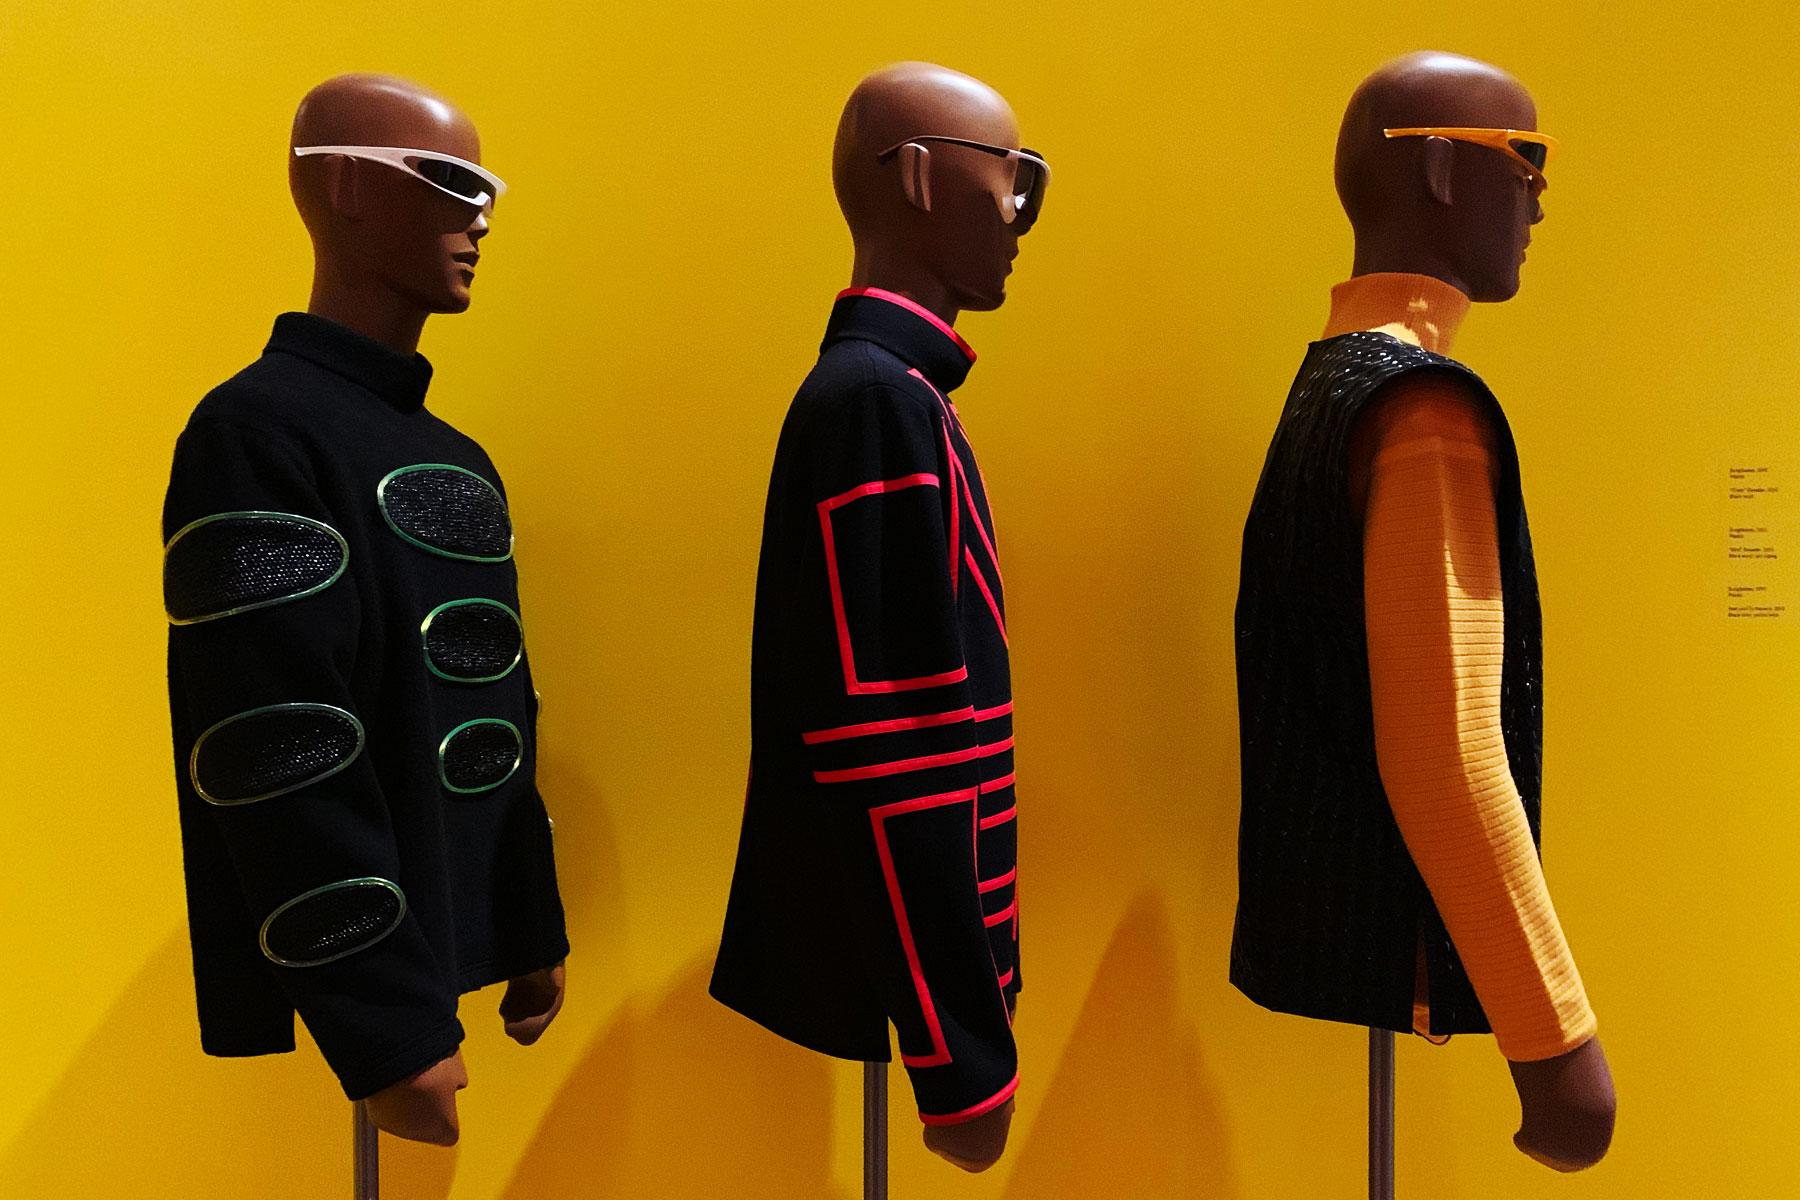 Vintage Pierre Cardin avant garde jackets and sunglasses at the Brooklyn Museum. Photographed by Alexander Thompson for Ponyboy magazine.